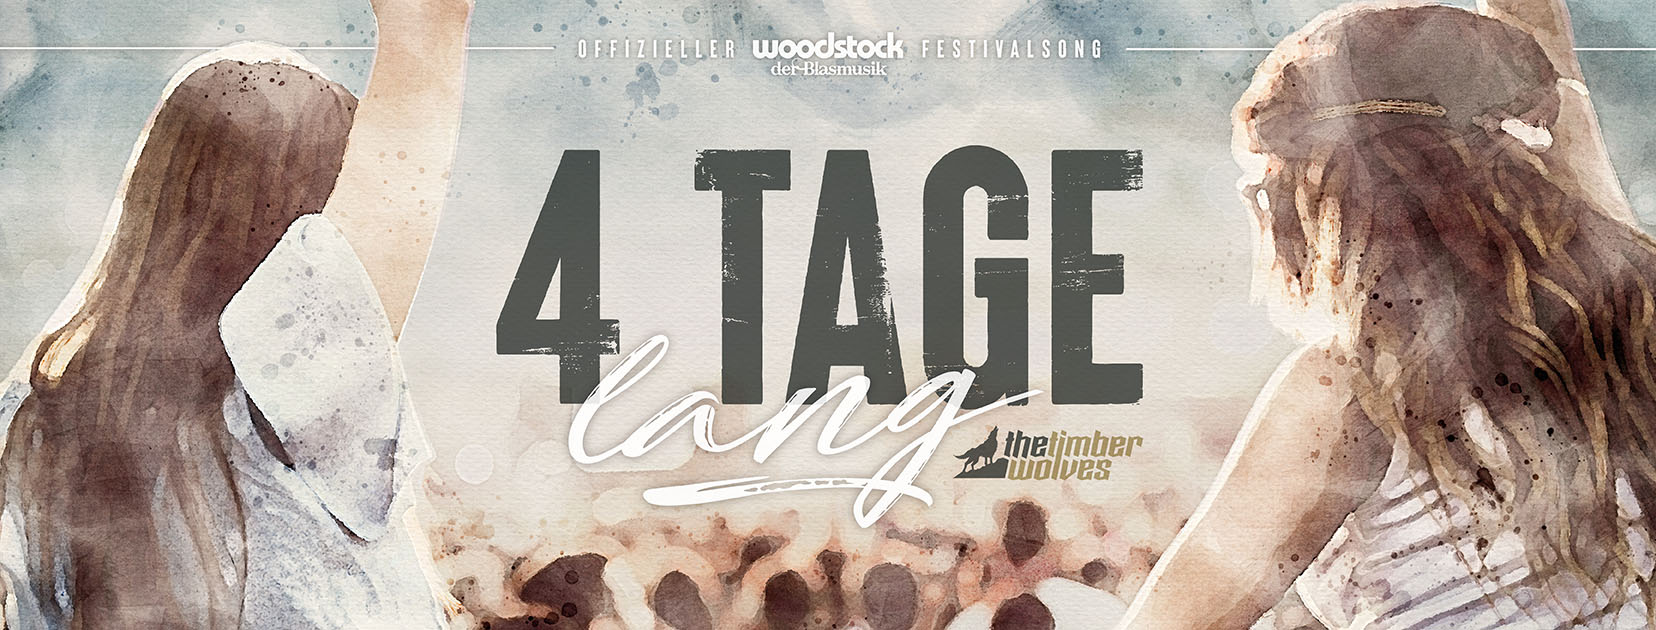 The Timberwolves - 4 Tage lang (offizieller Woodstock-Festivalsong)